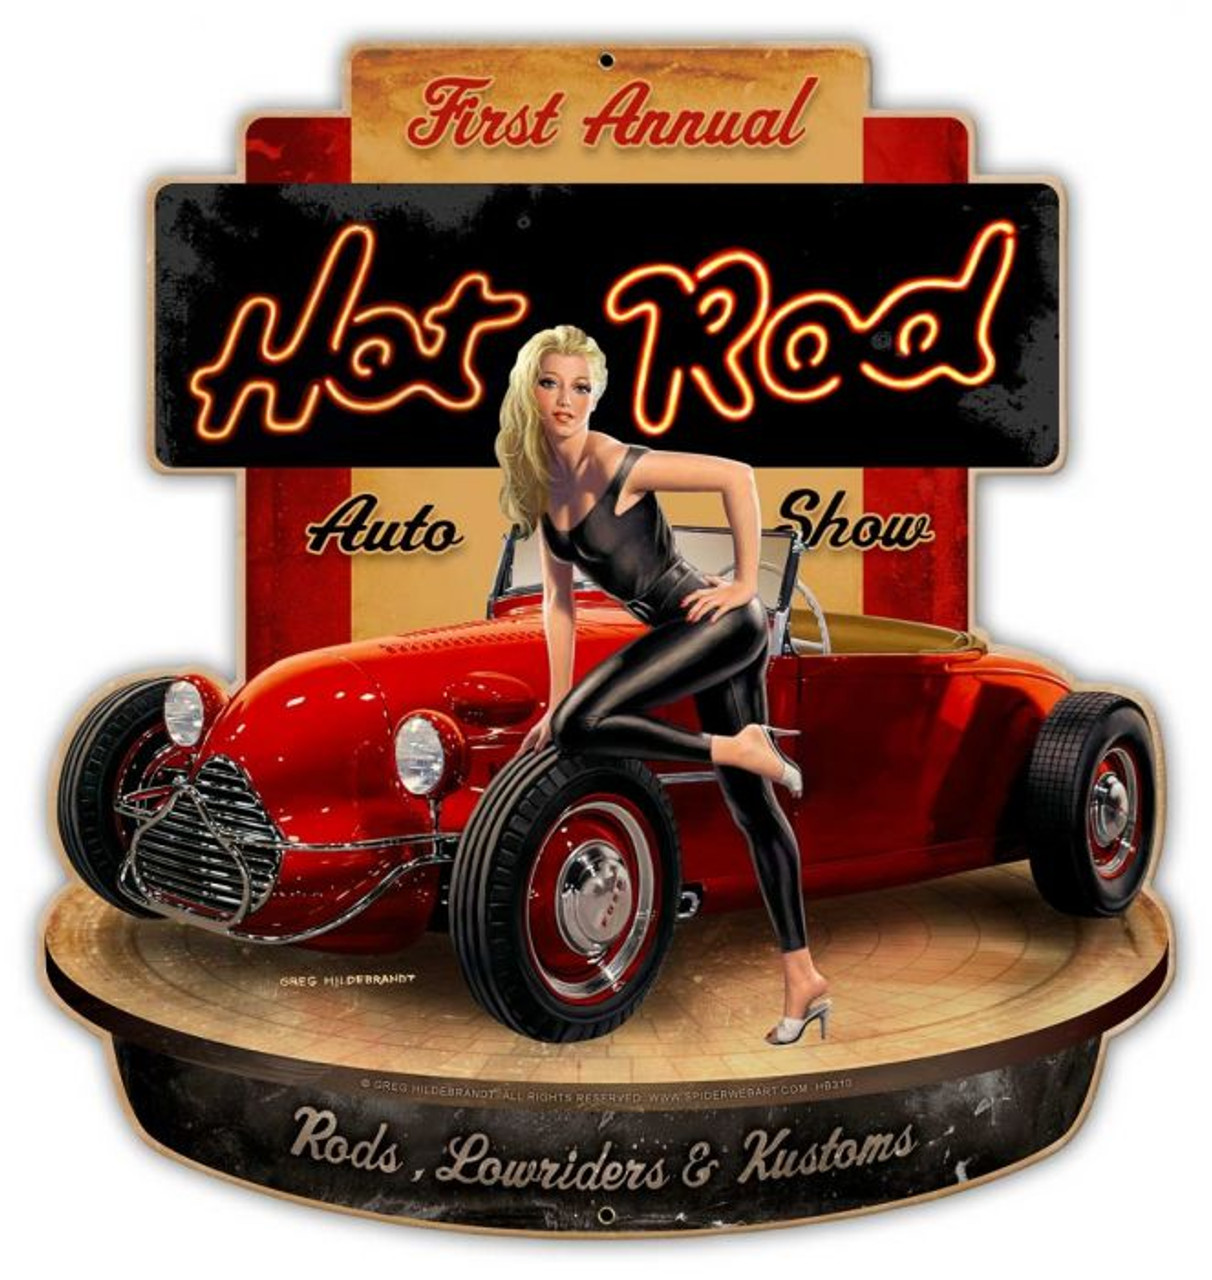 Hot Rod Show Metal Sign 23 x 24 Inches